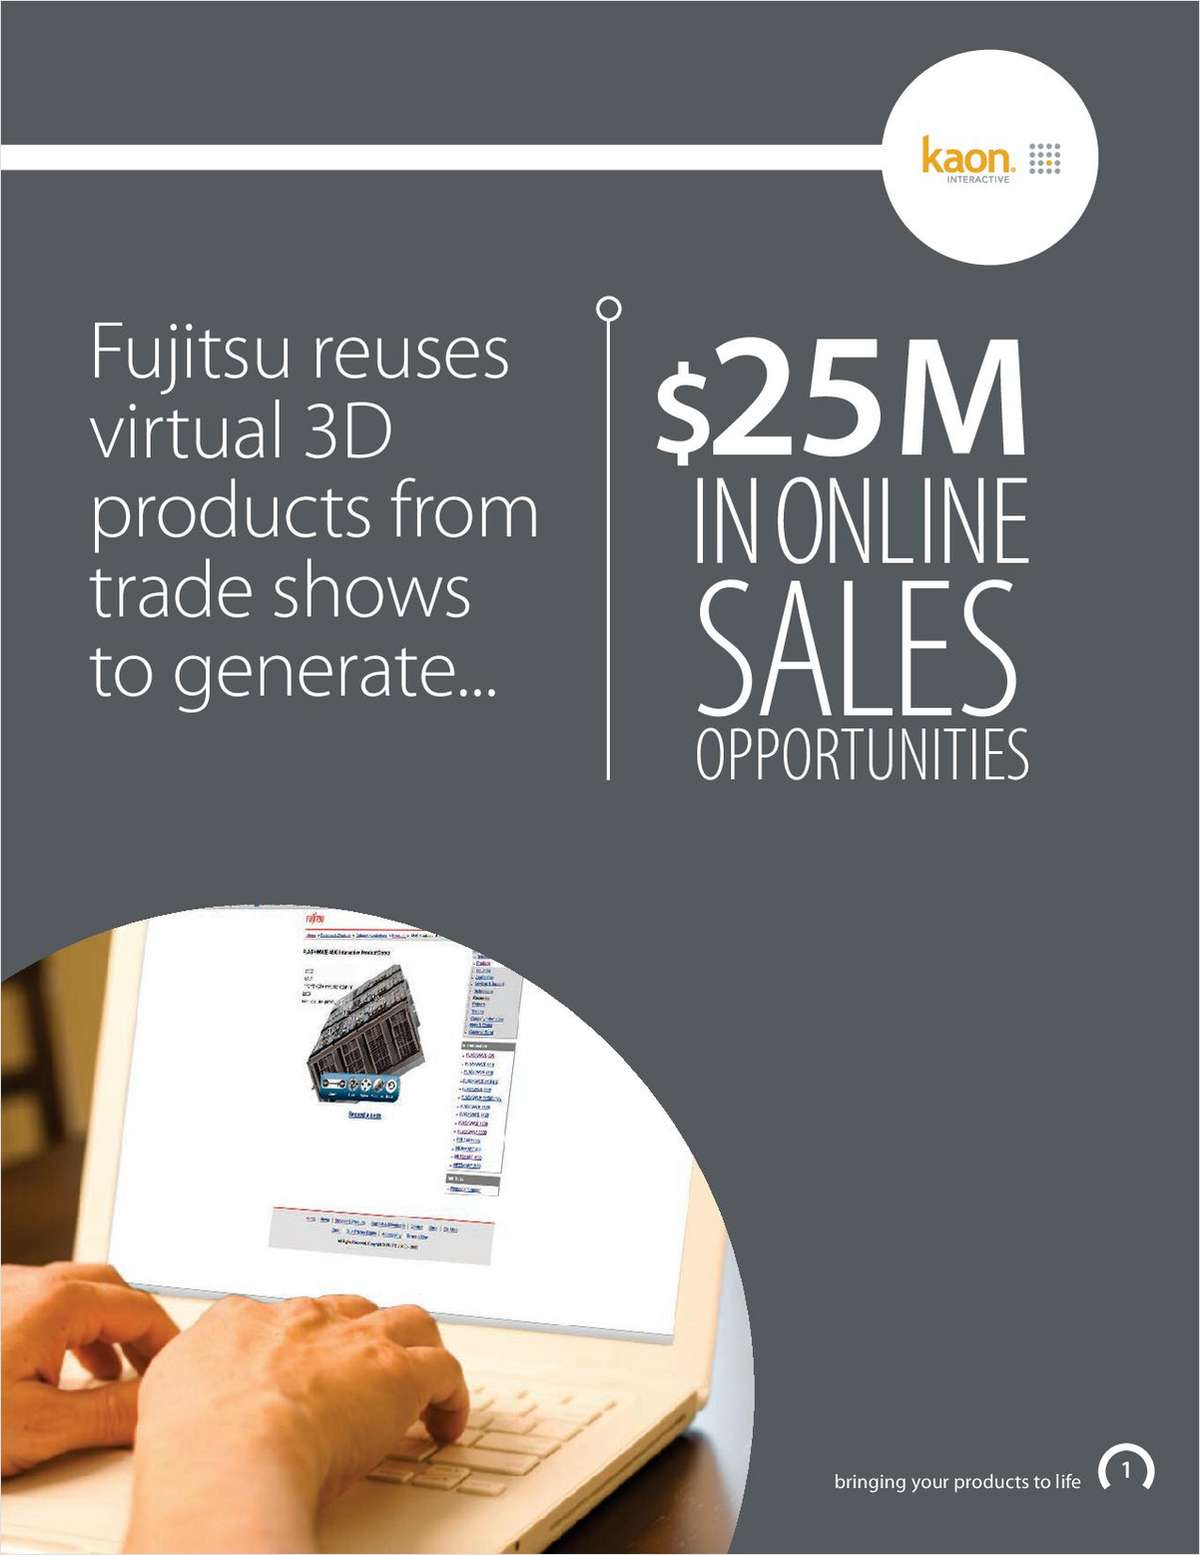 Fujitsu Reuses Virtual 3D Products from Trade Shows to Generate $25M IN ONLINE SALES OPPORTUNITIES